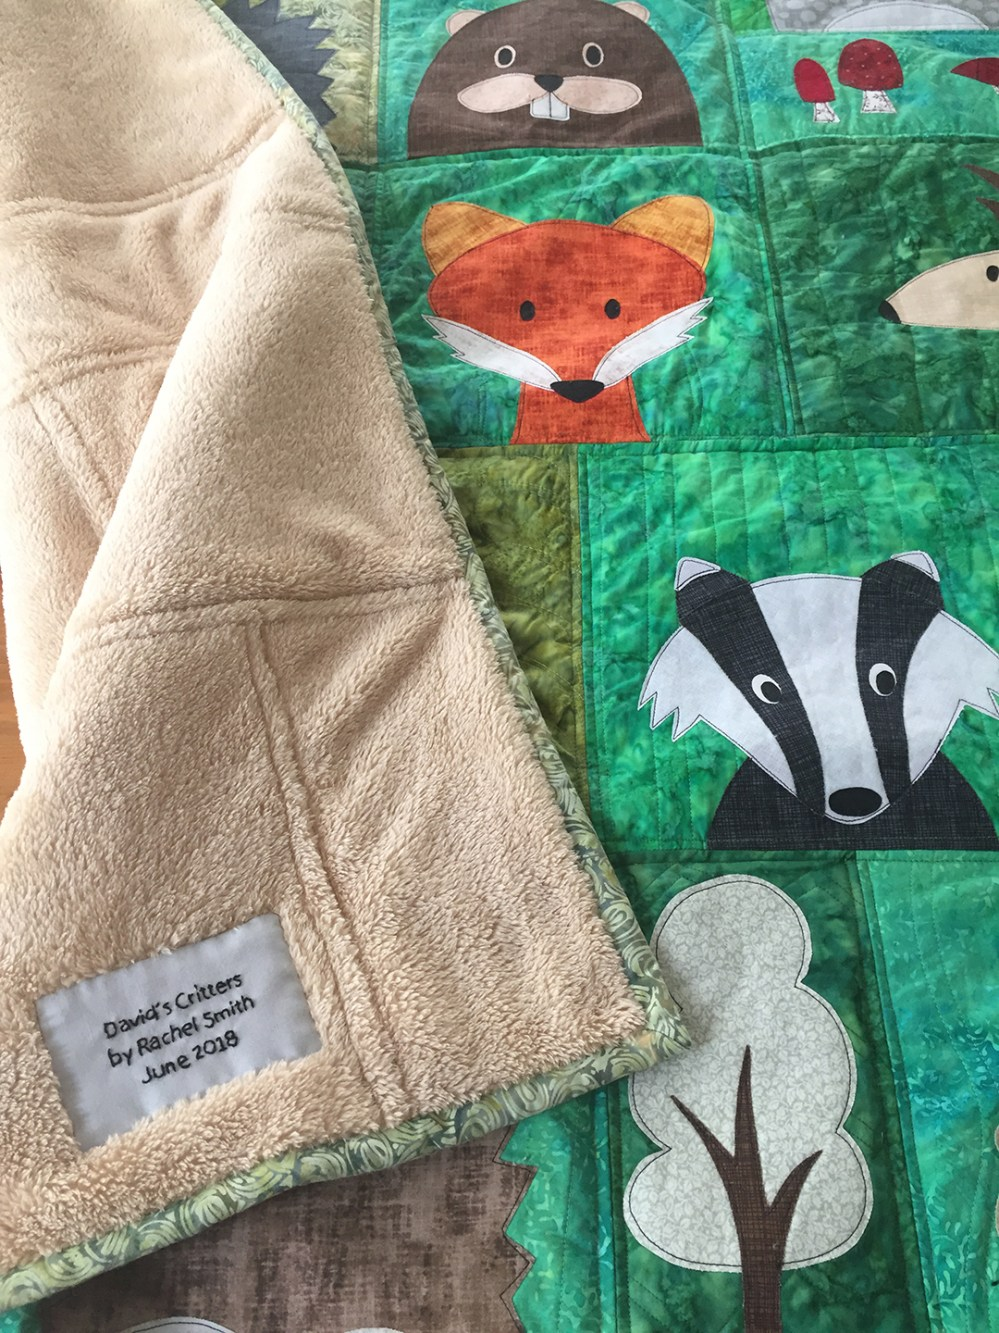 photo of a quilt showing a corner of the backing with an embroidered label